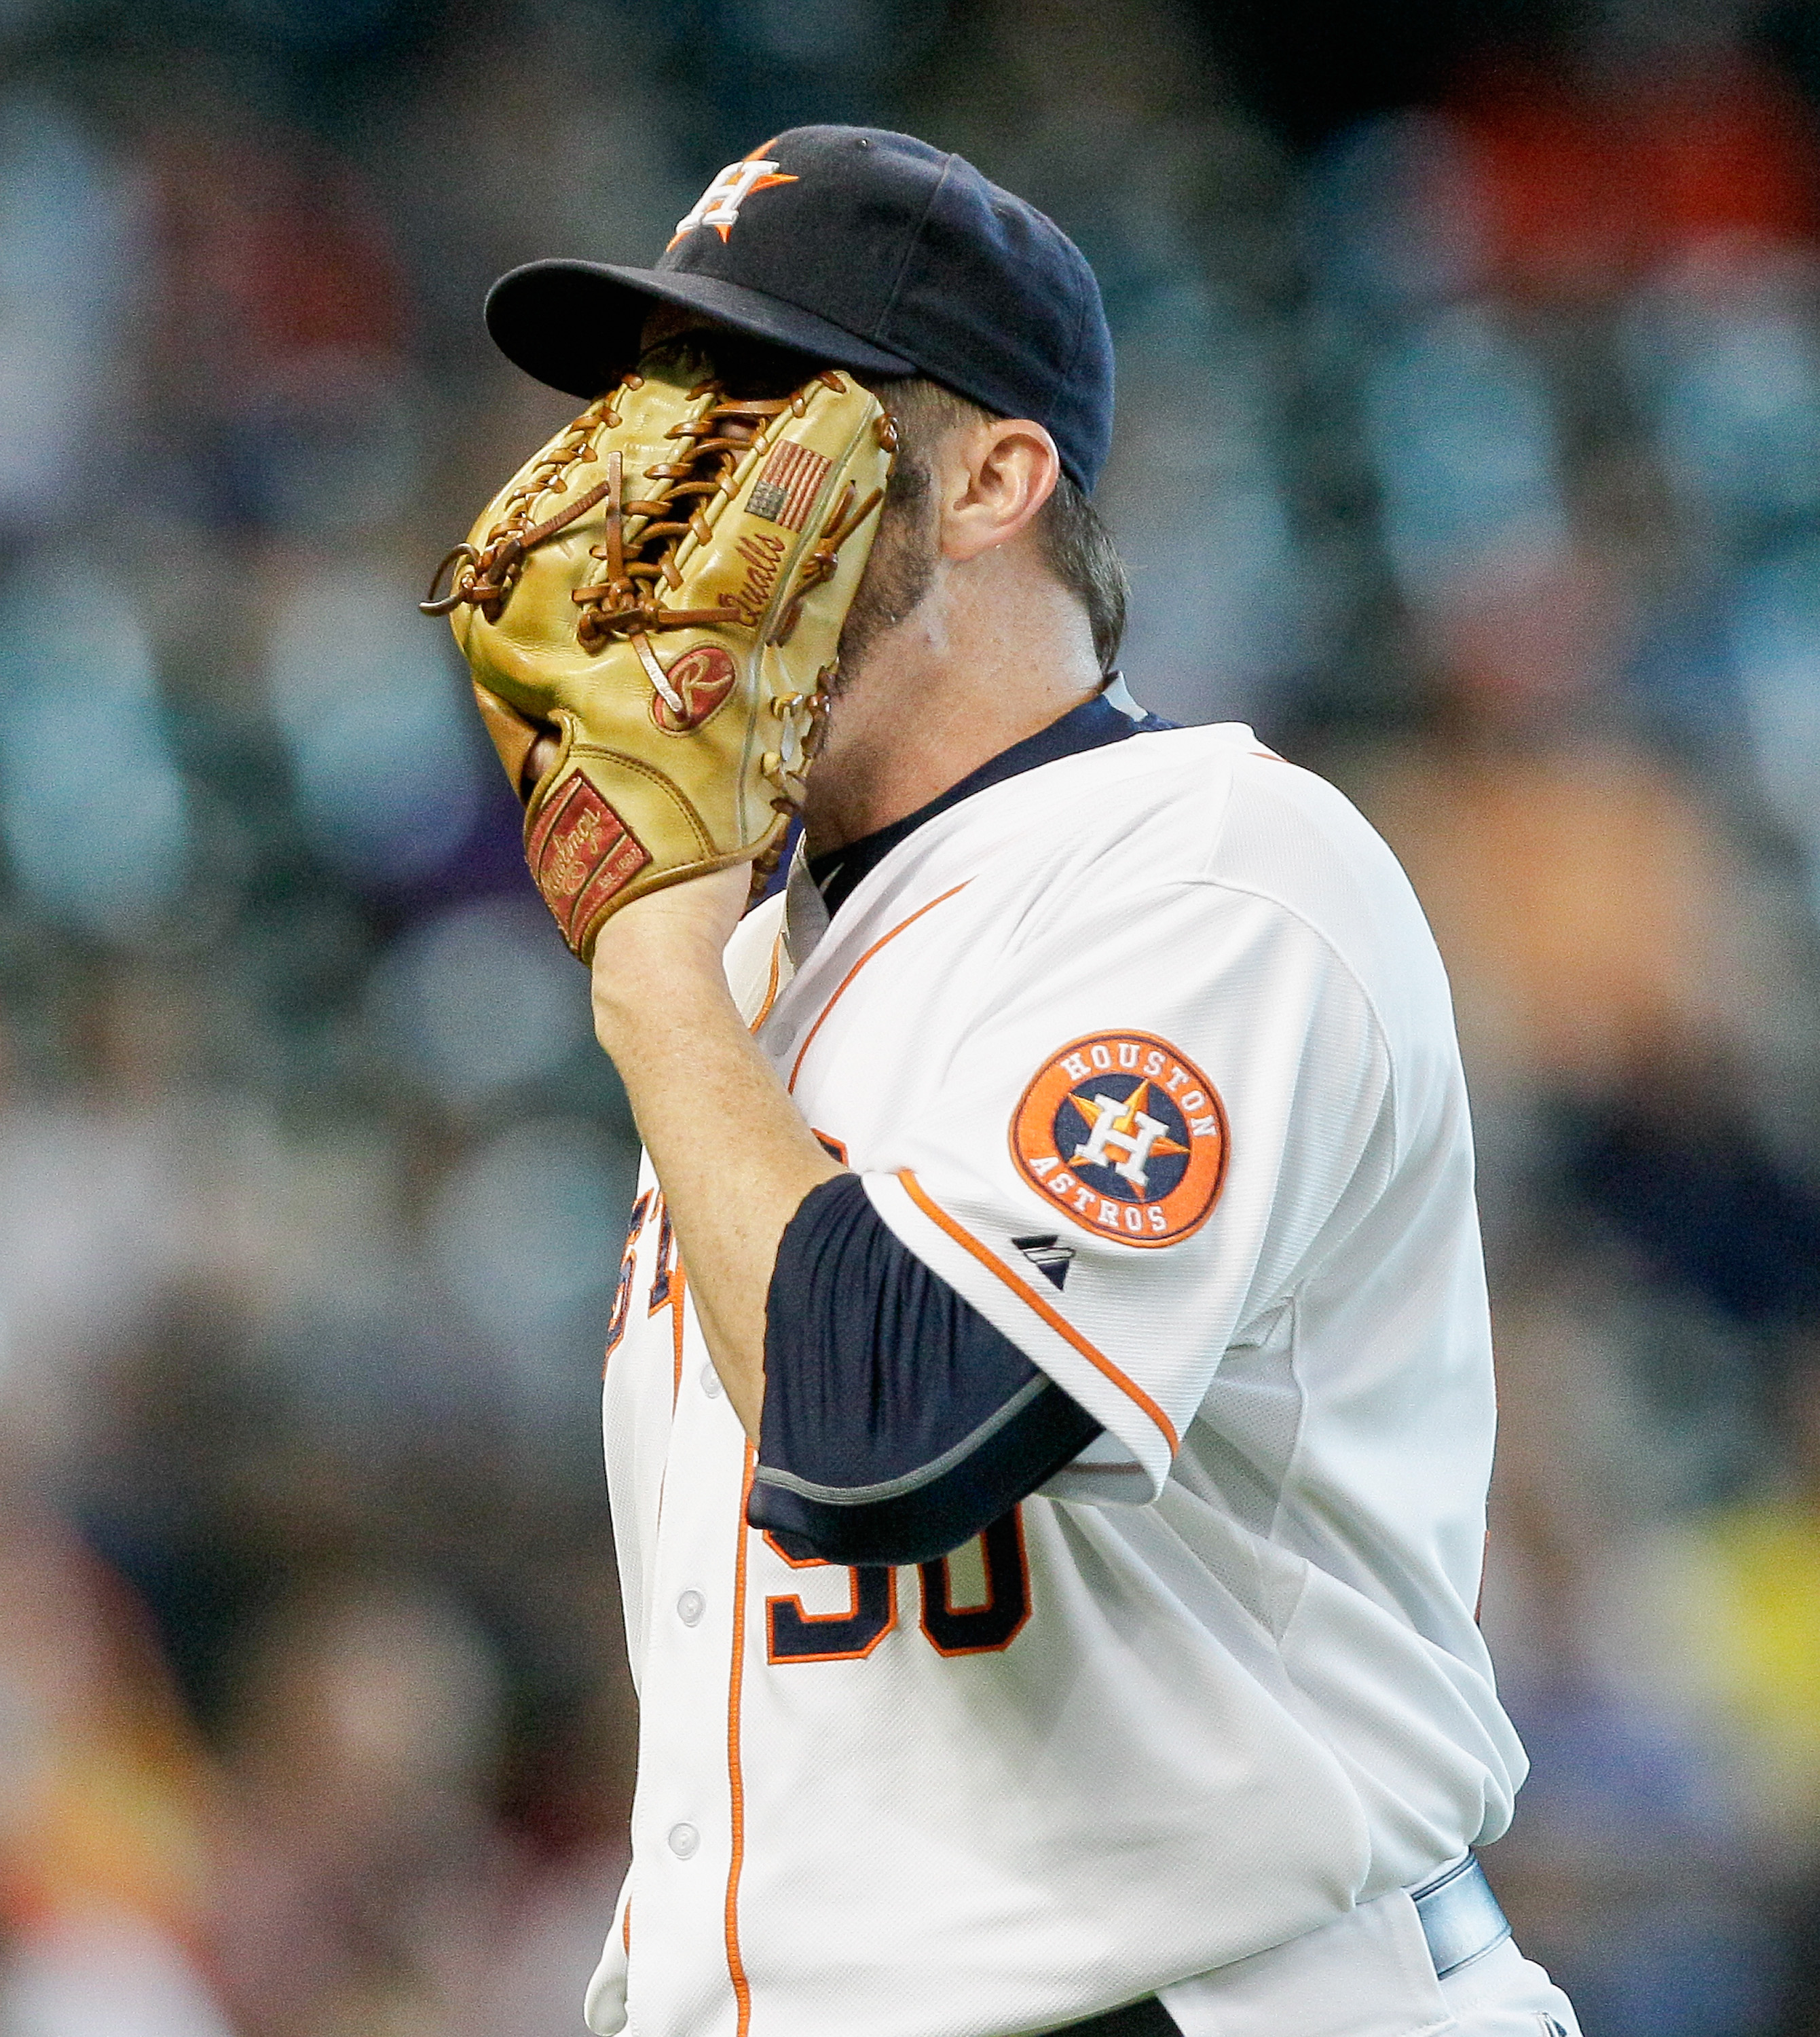 Houston Astros' Chad Qualls buries his face in his glove after giving up a home run to Baltimore Orioles' Adam Jones in the eighth inning of a baseball game, Thursday, June 4, 2015 in Houston. (AP Photo/Bob Levey)